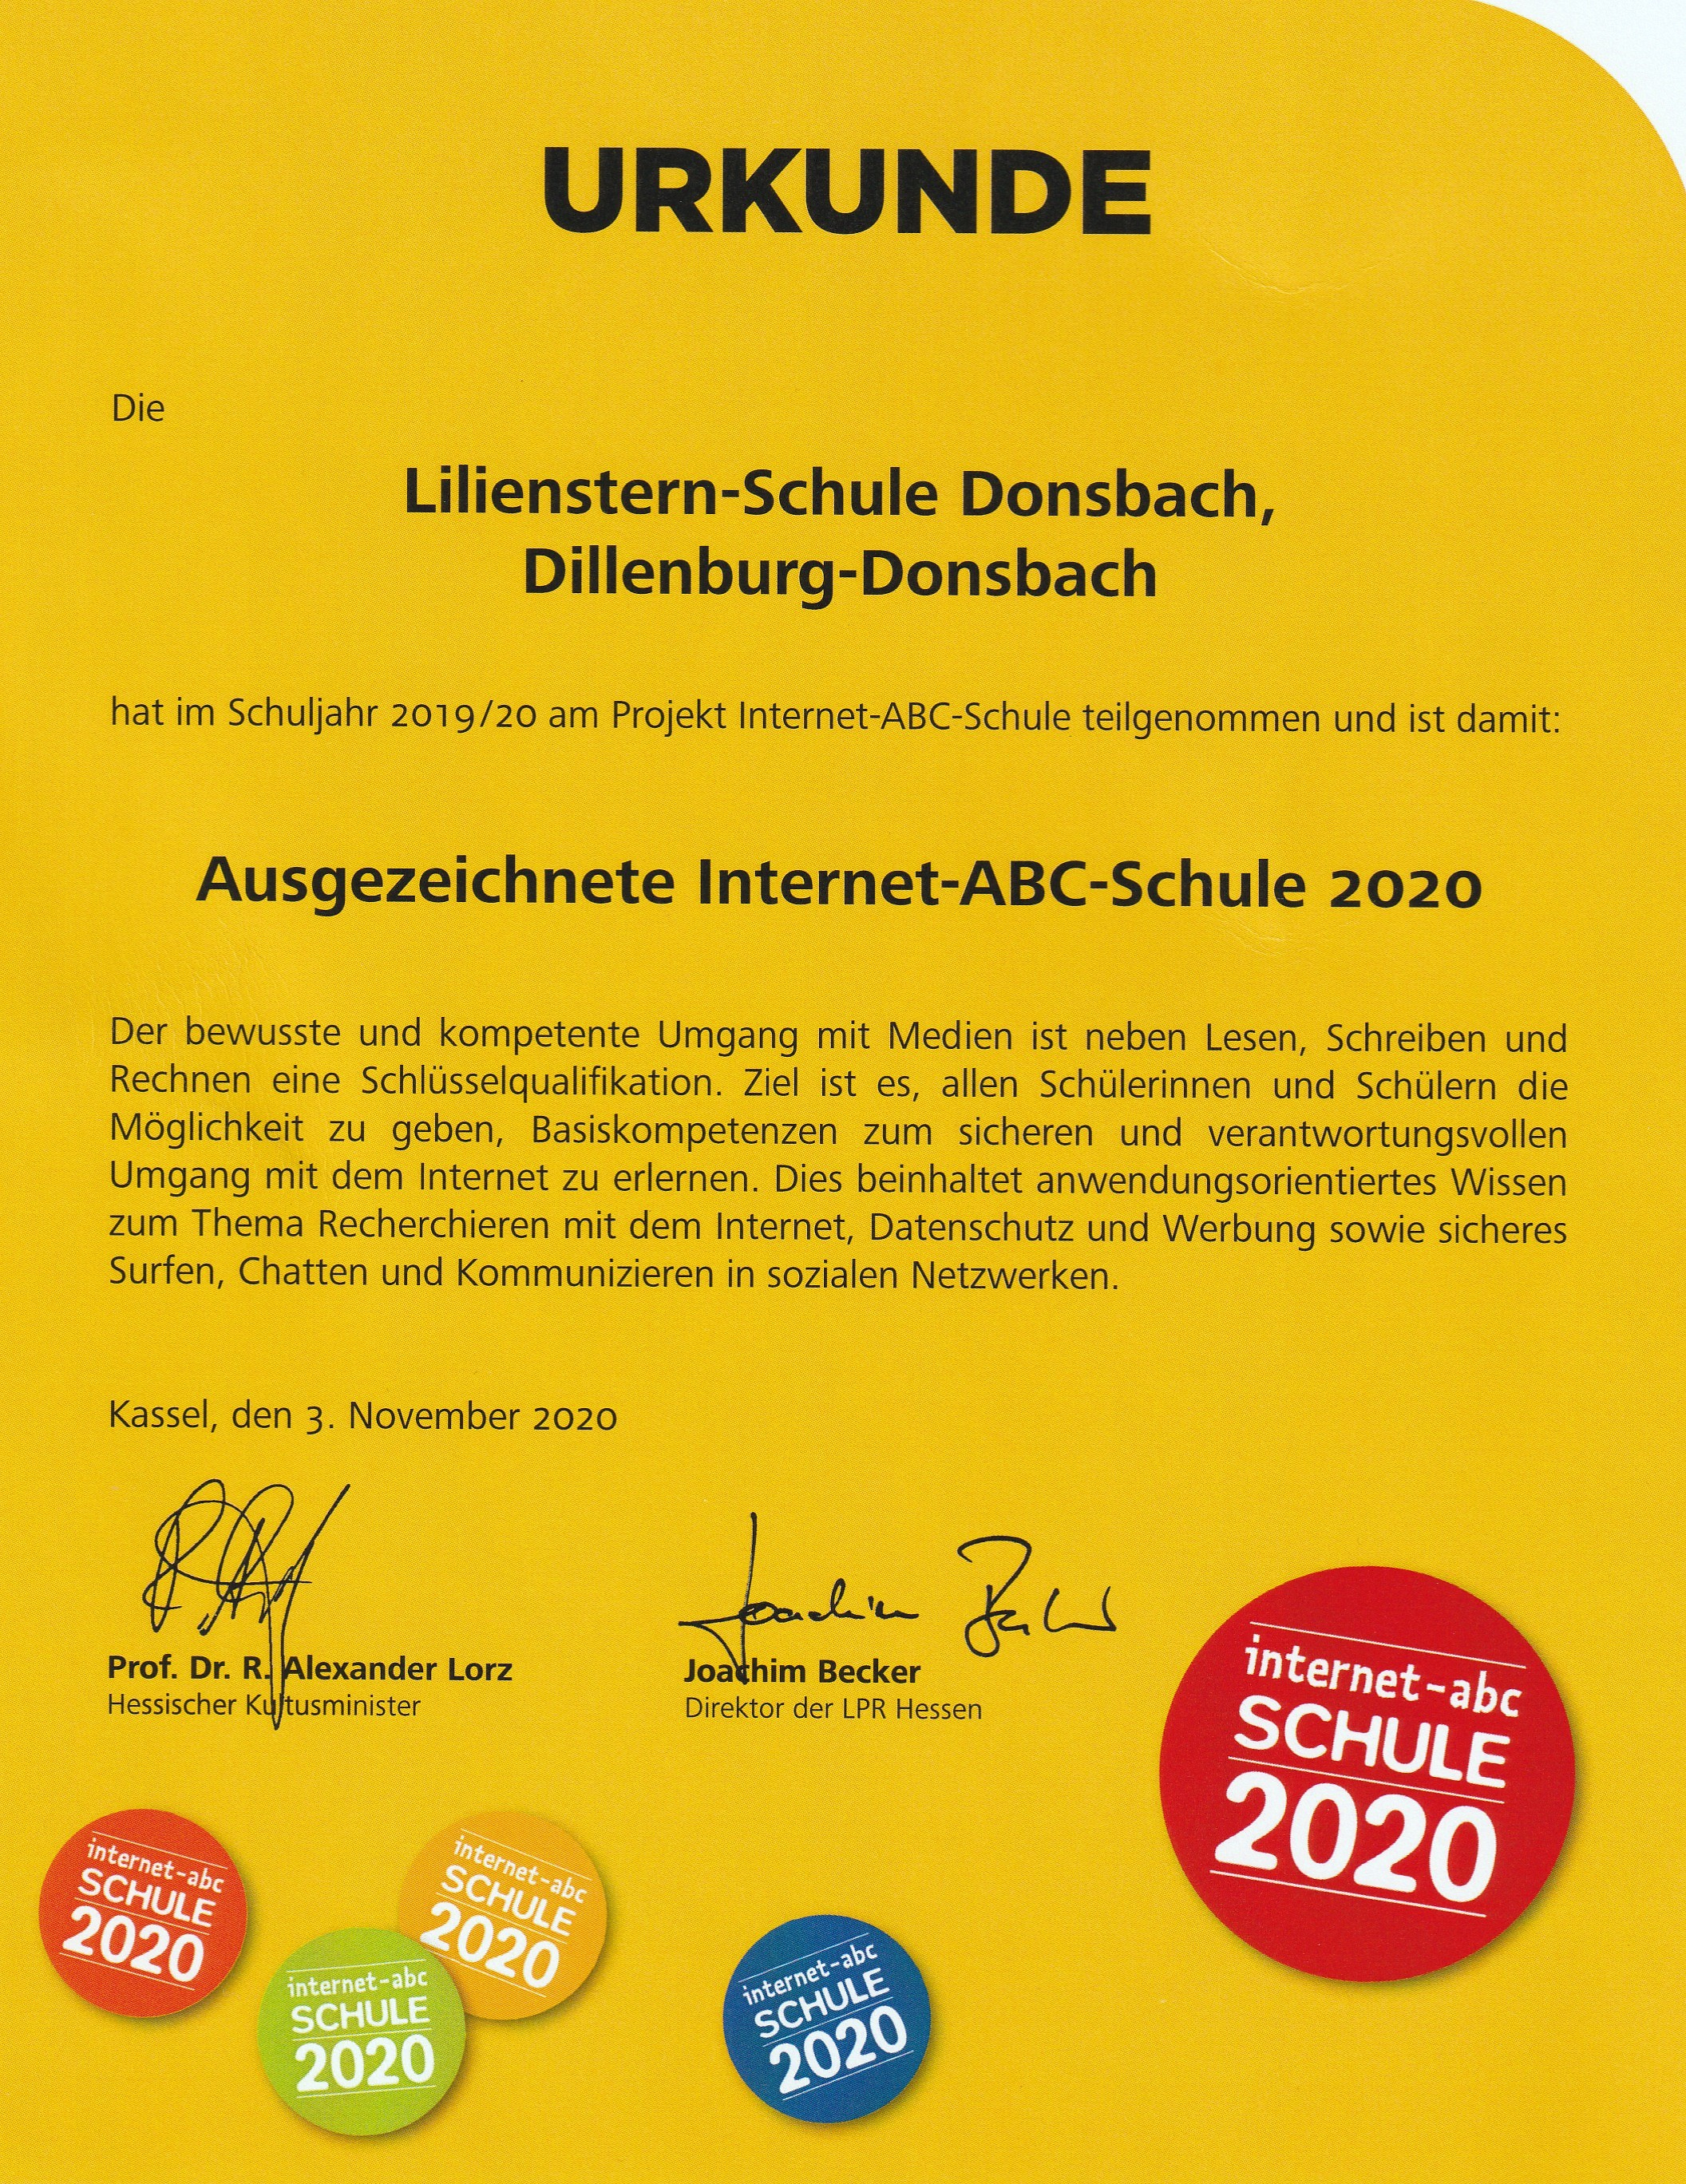 urkunde-int-abc-schule_2020